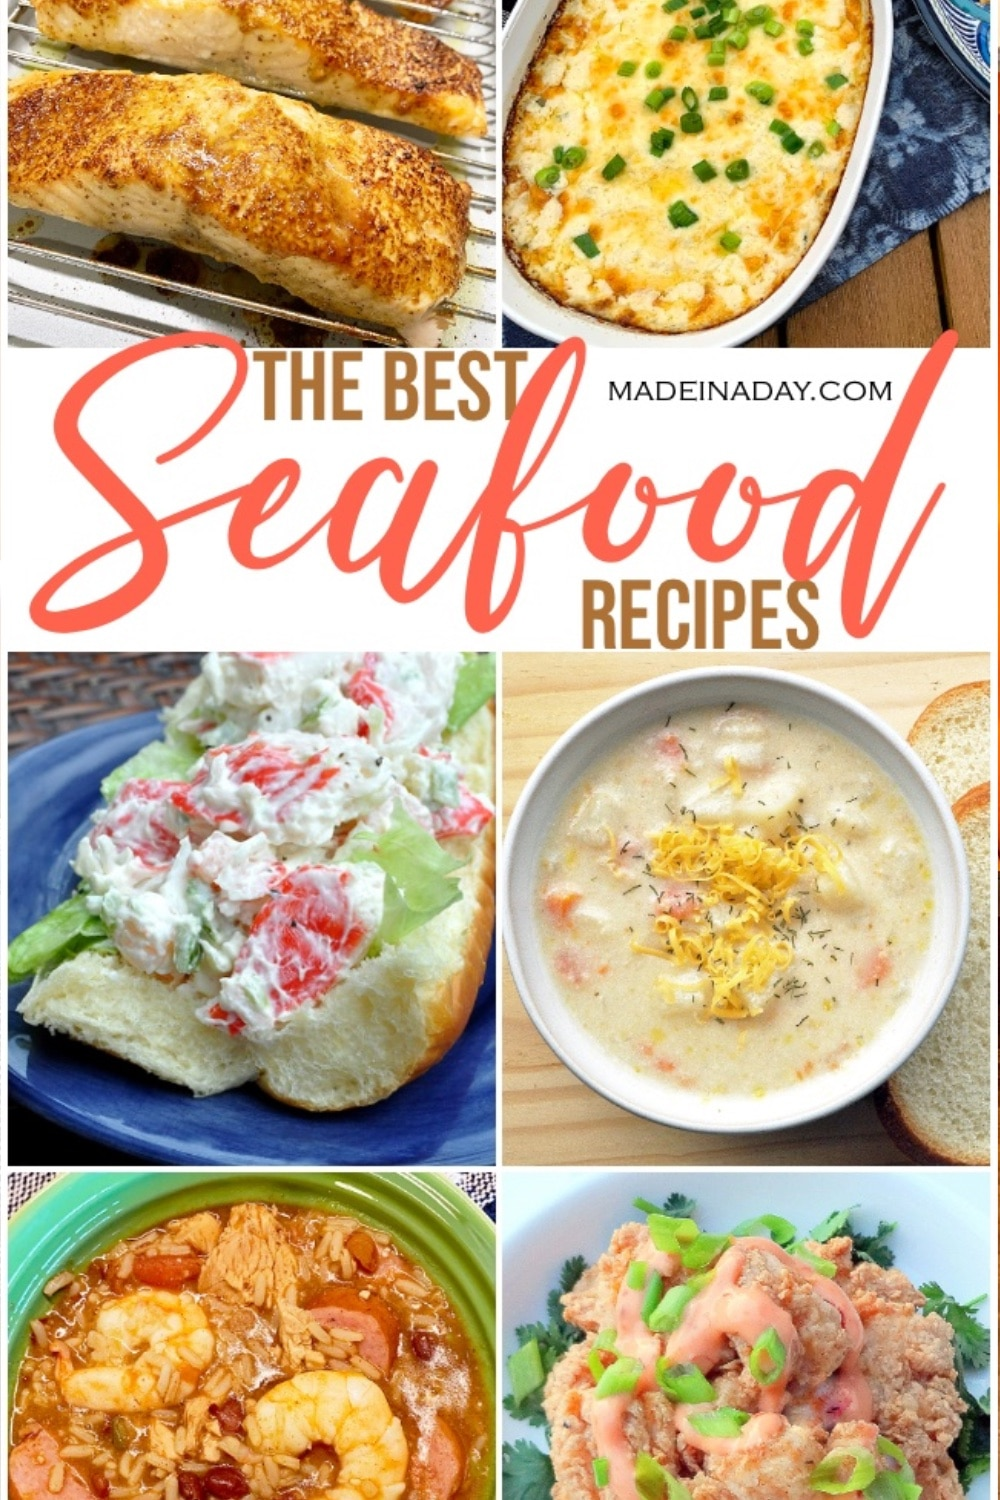 10+ The Best Seafood Recipes 4